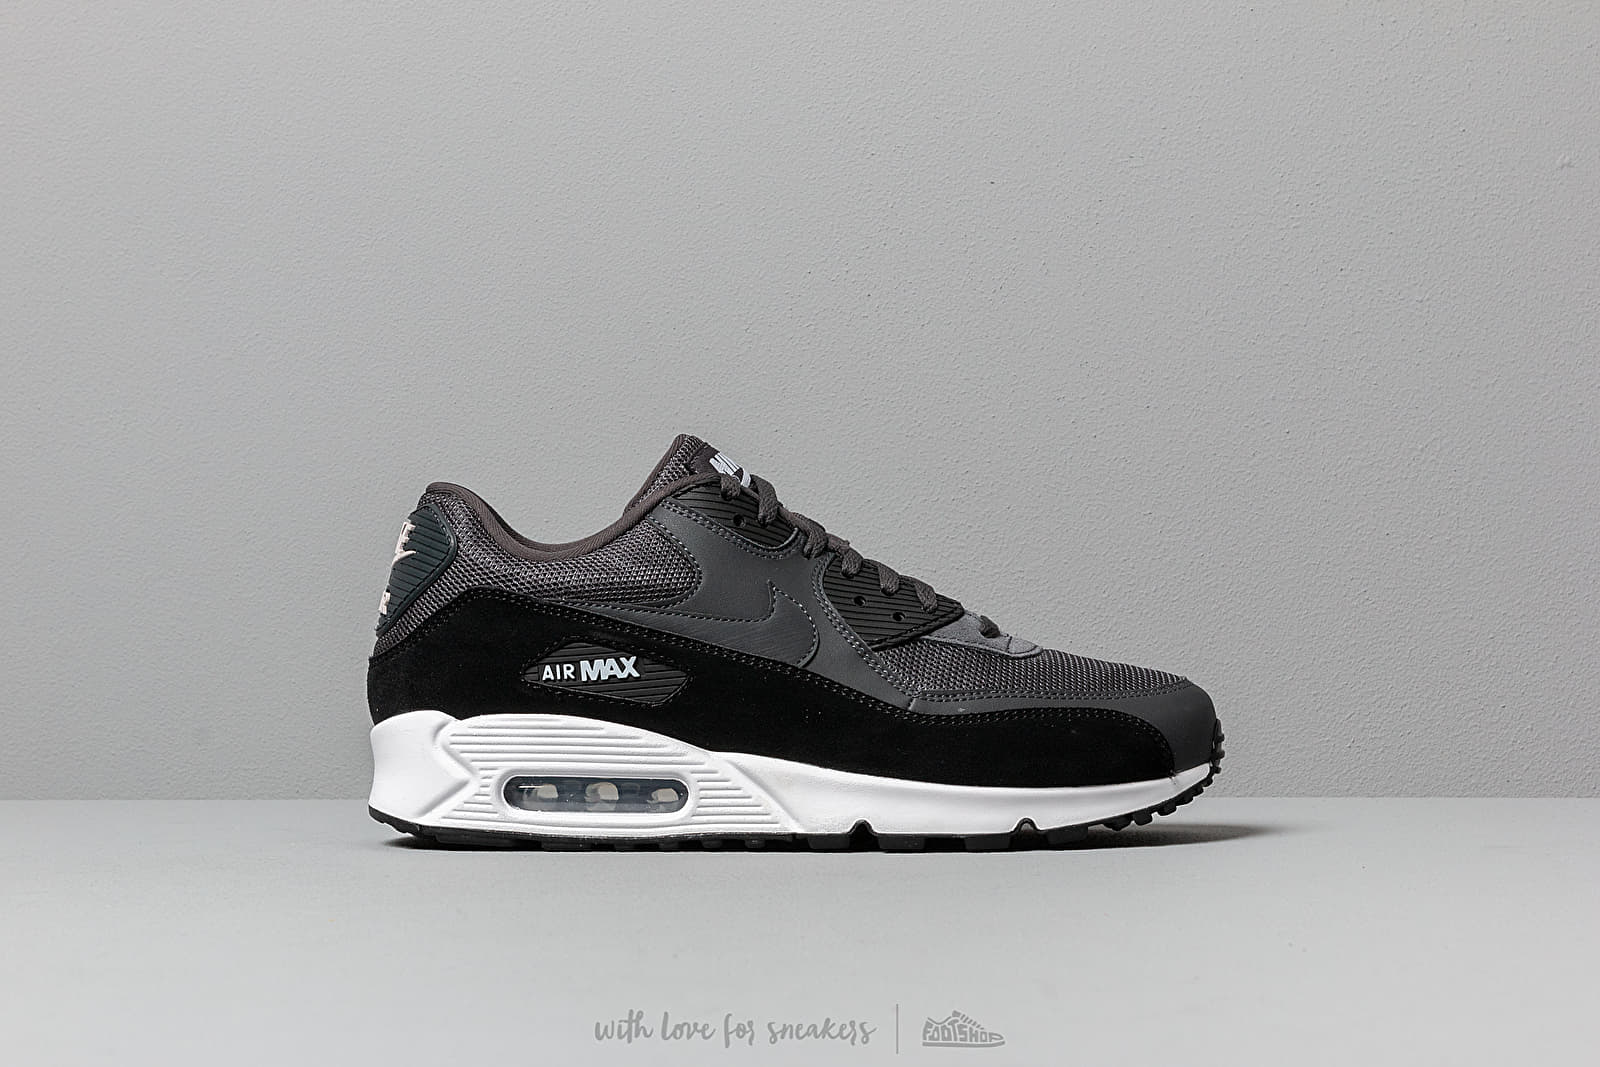 bd0702a4aa9 Nike Air Max 90 Essential Anthracite  White-Black at a great price  155 buy